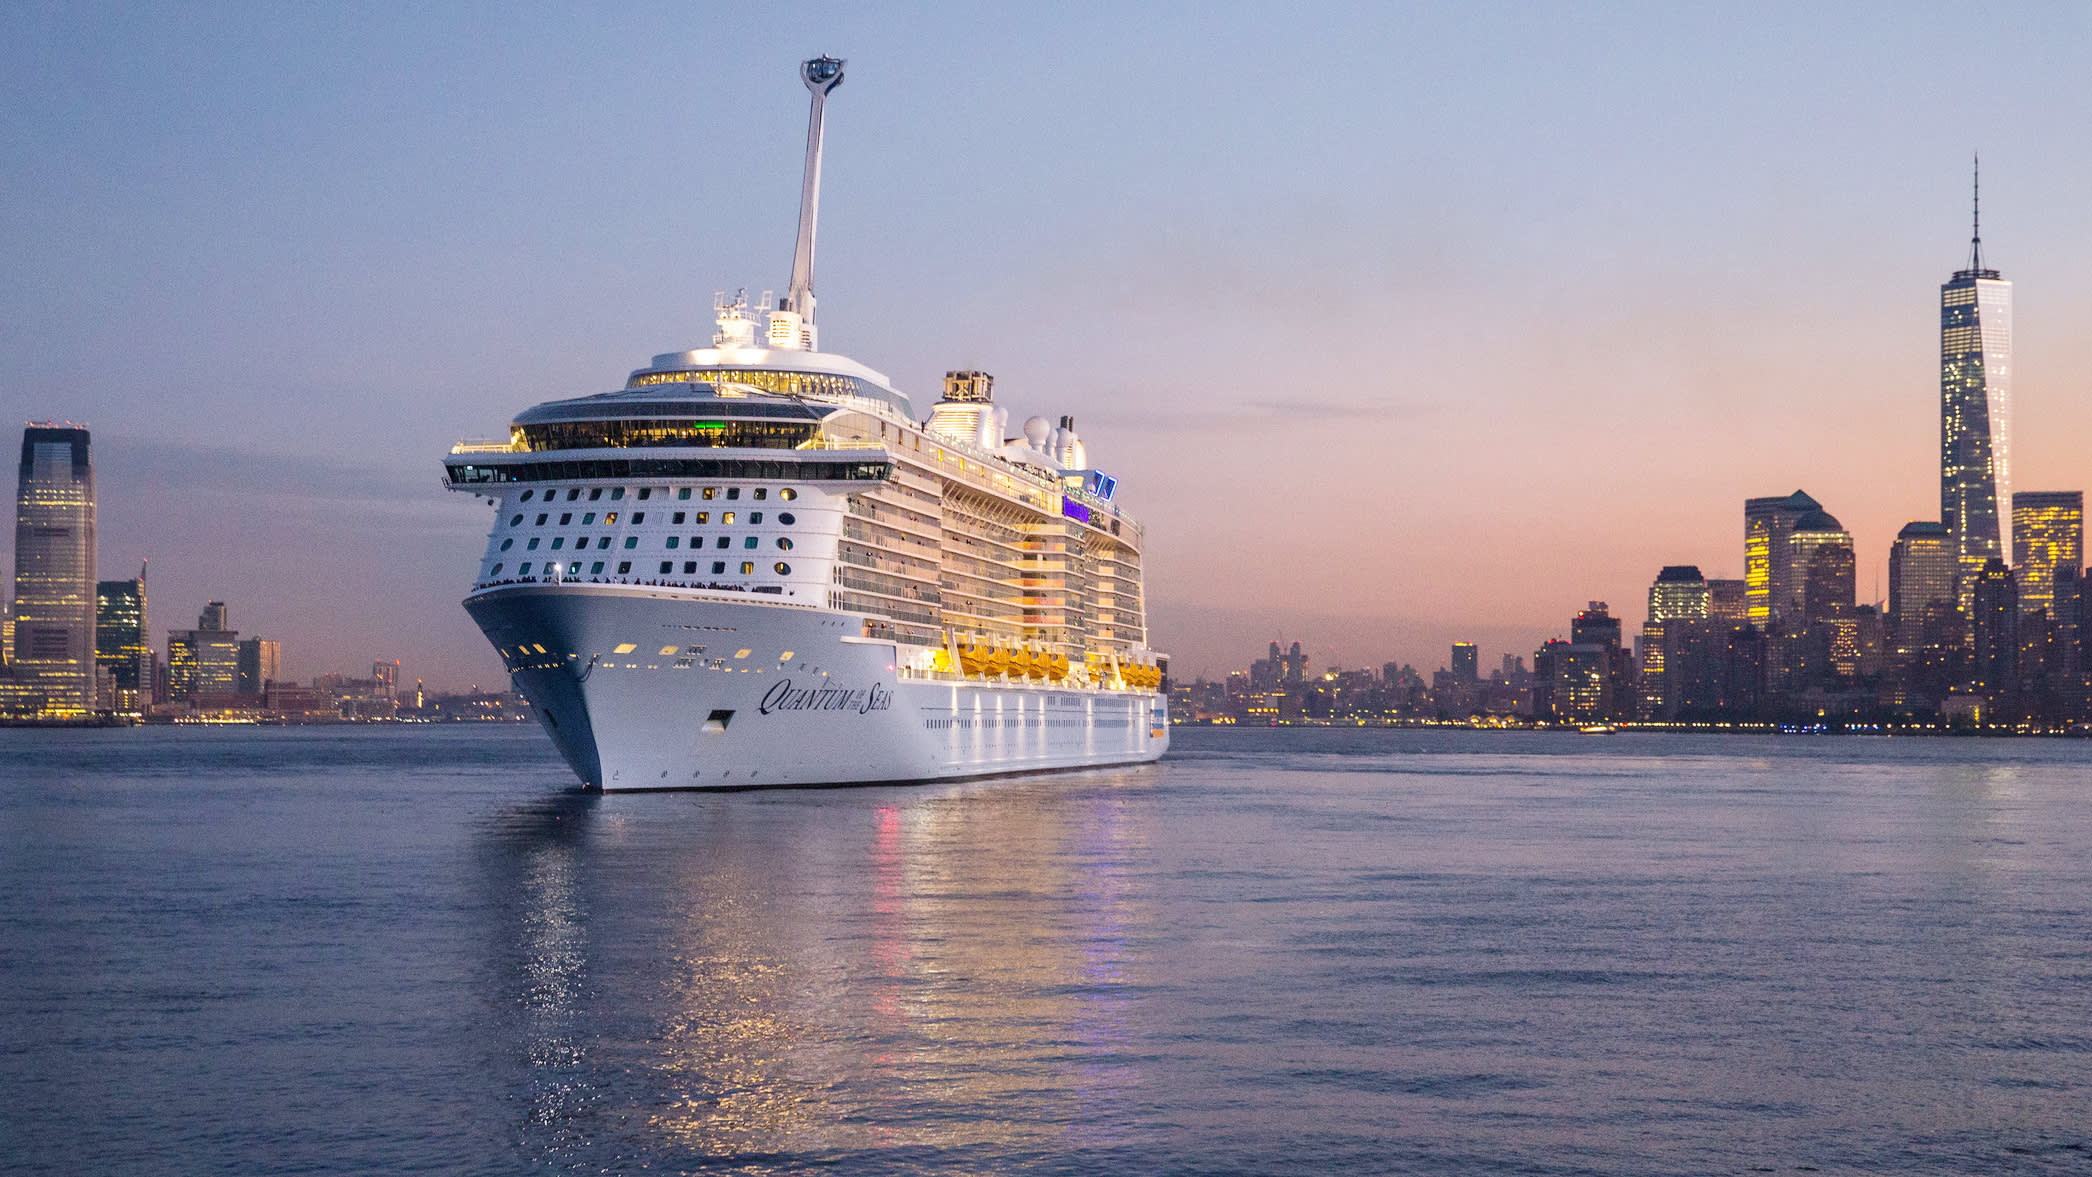 royal caribbean cruise line ltd essay Need essay sample on royal caribbean cruise lines profitability outlook - royal caribbean cruise lines profitability outlook introduction we will write a cheap essay sample on royal caribbean cruise lines profitability outlook specifically for you for only $1290/page.